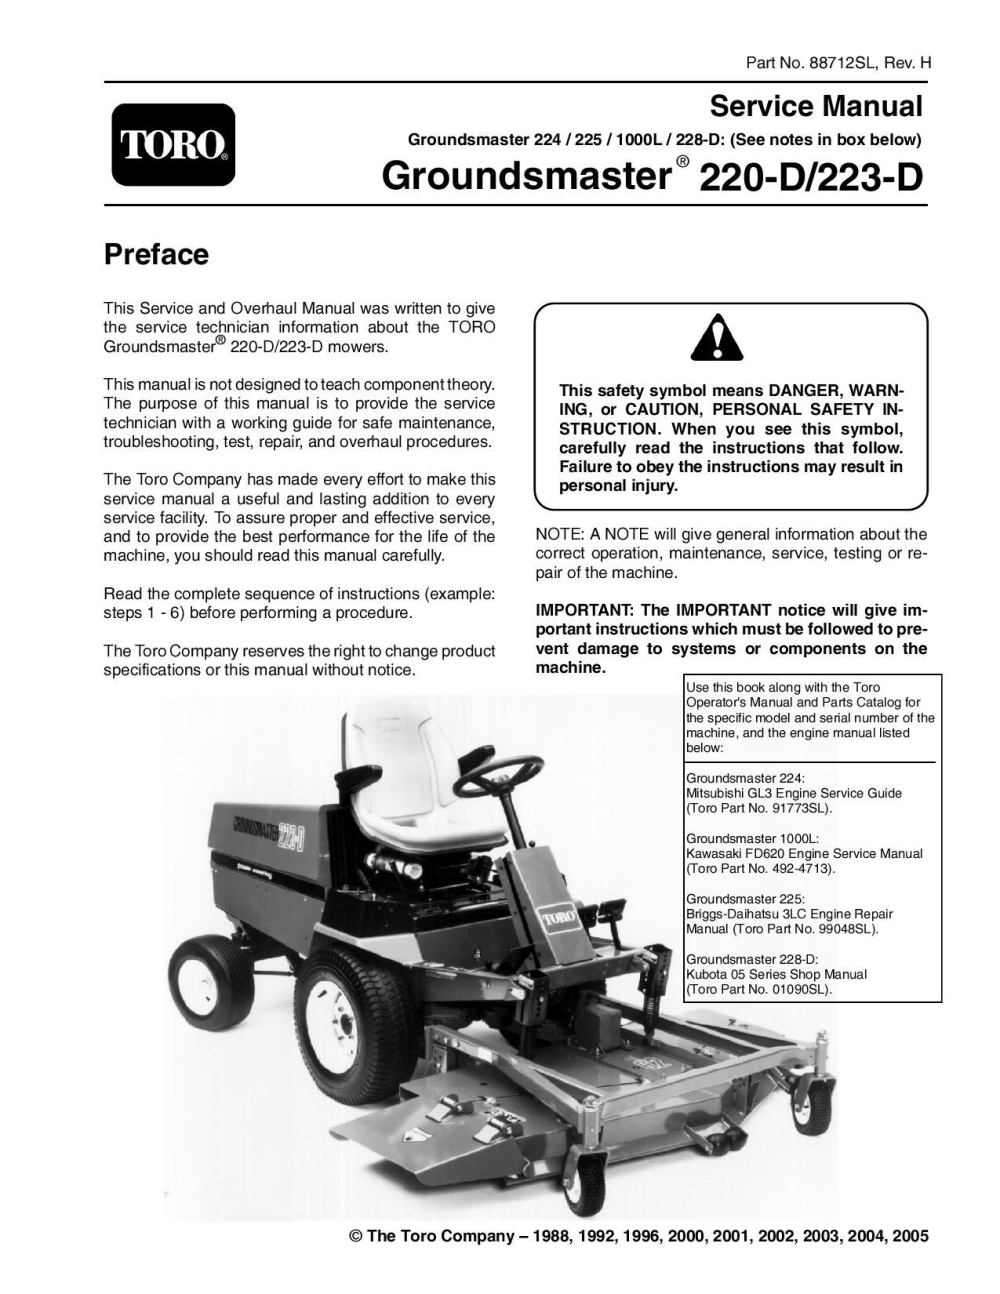 medium resolution of 88712sl pdf groundsmaster 200 series rev h nov 2005 by negimachi negimachi issuu